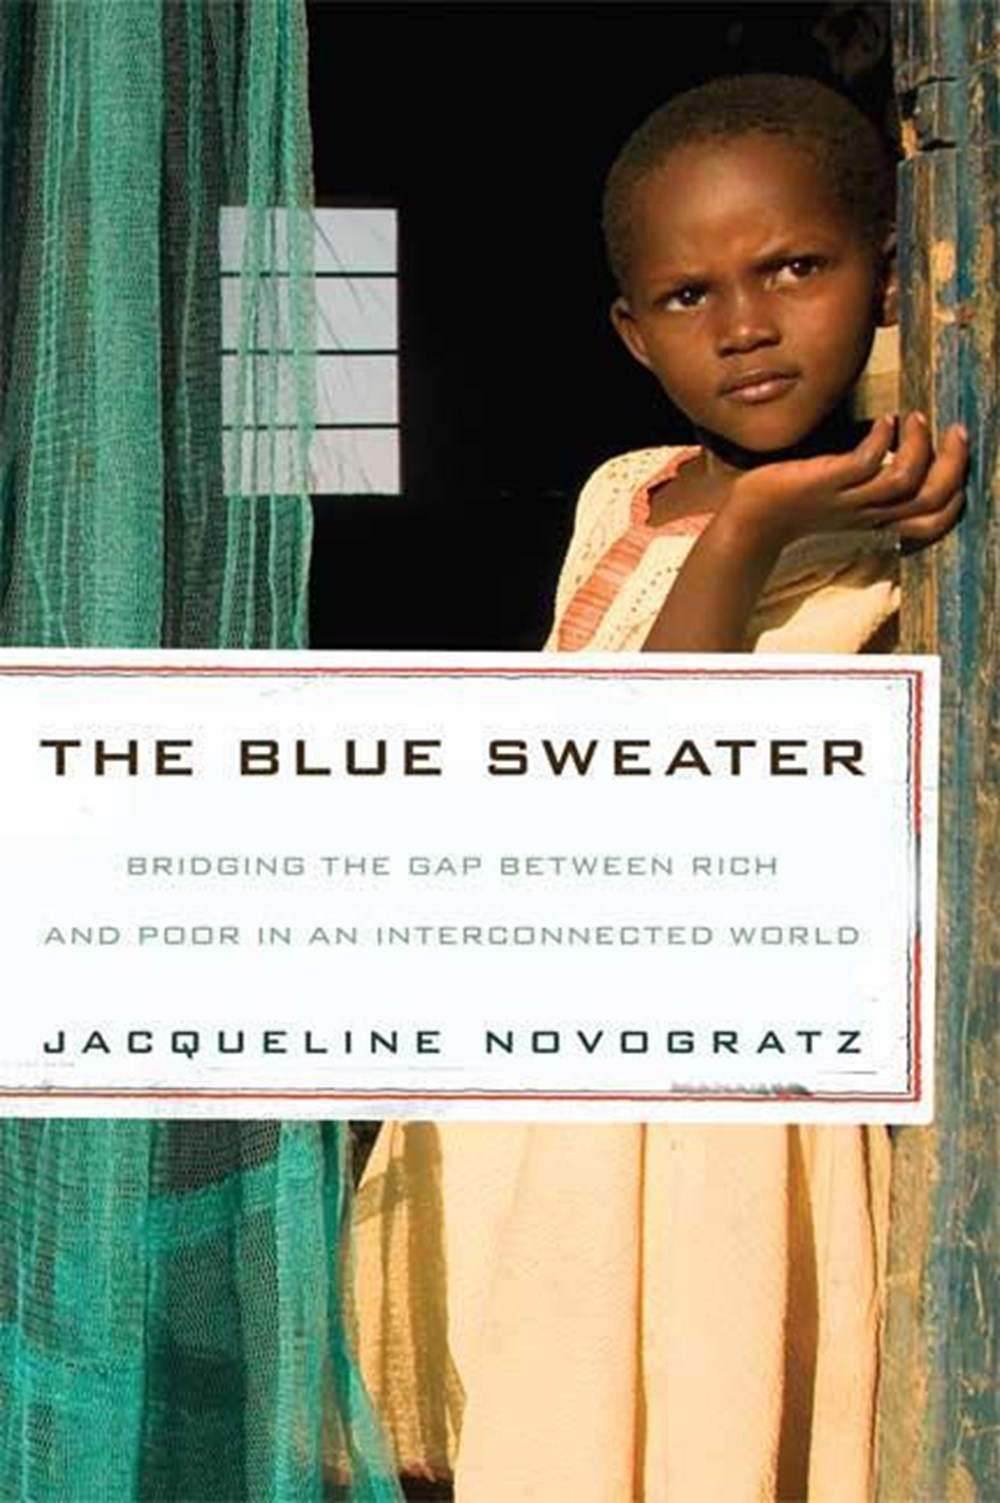 Blue Sweater Bridging the Gap Between Rich and Poor in an Interconnected World